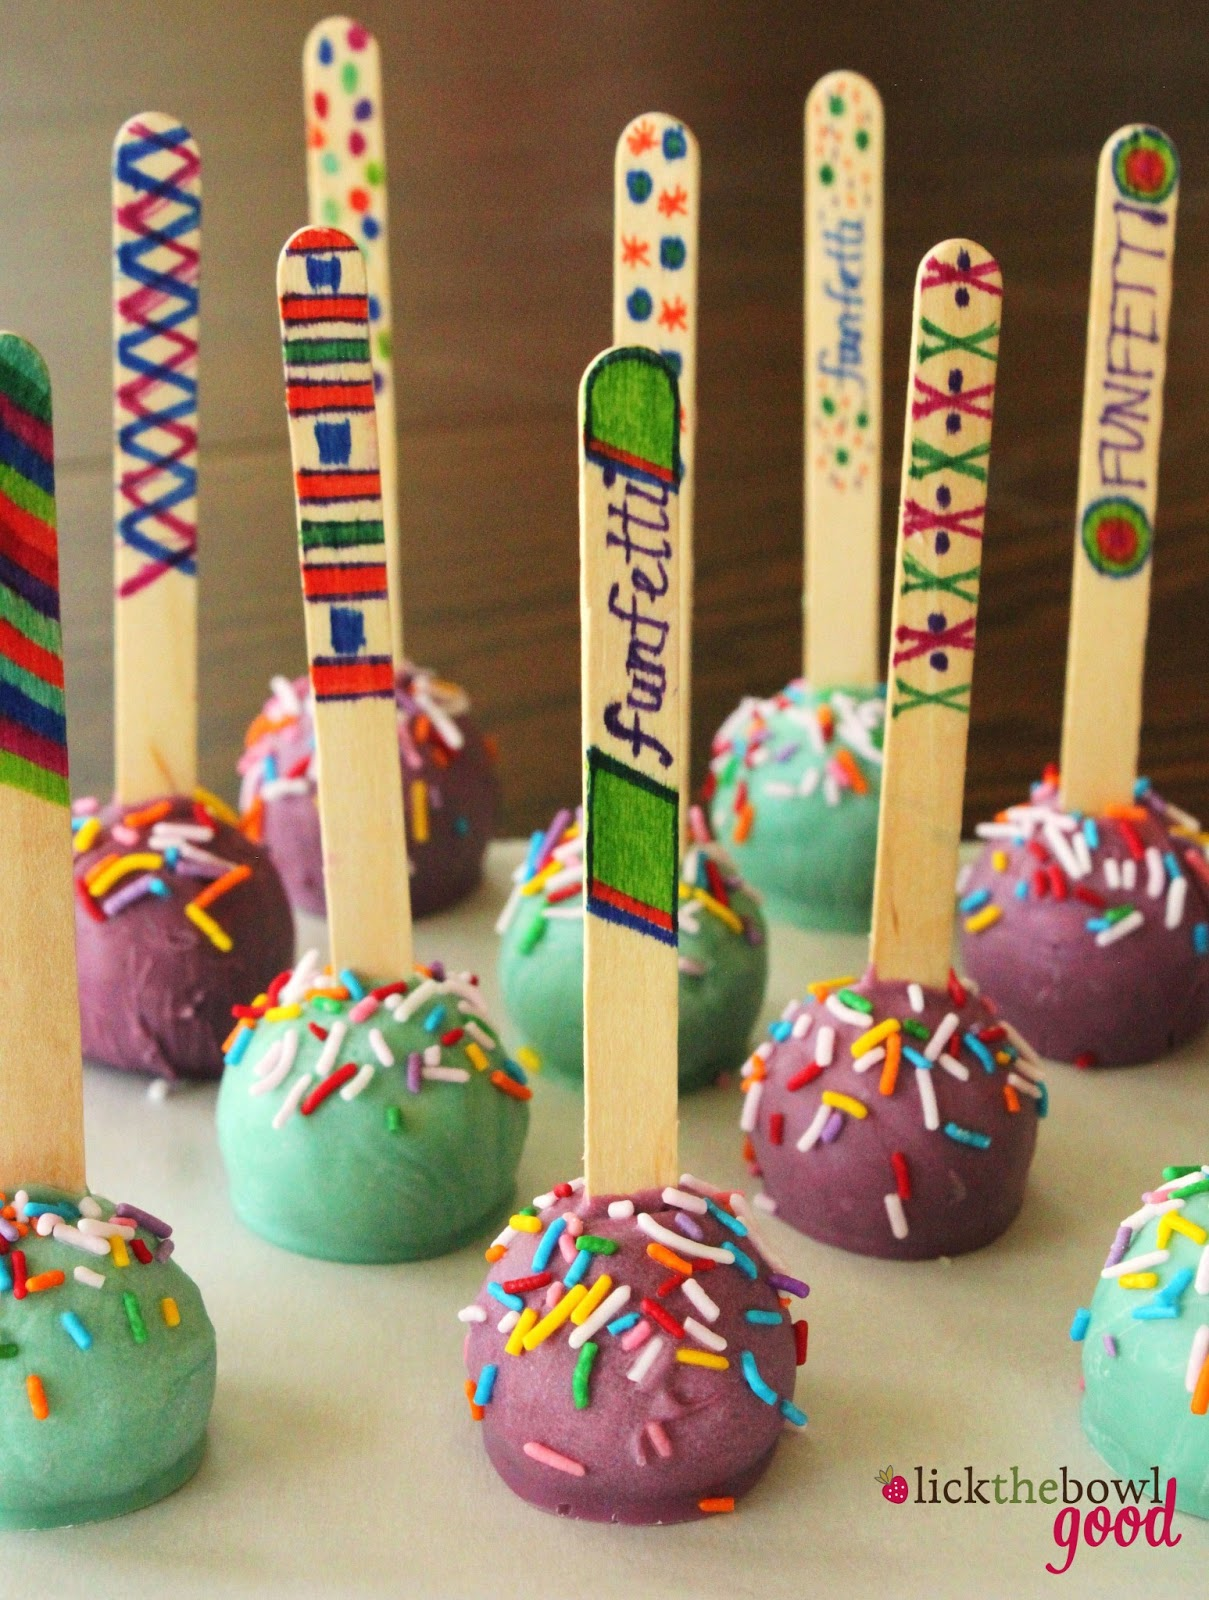 Lick The Bowl Good My Birthday Cakes And NoBake Cake Pops - Cake pop birthday cake